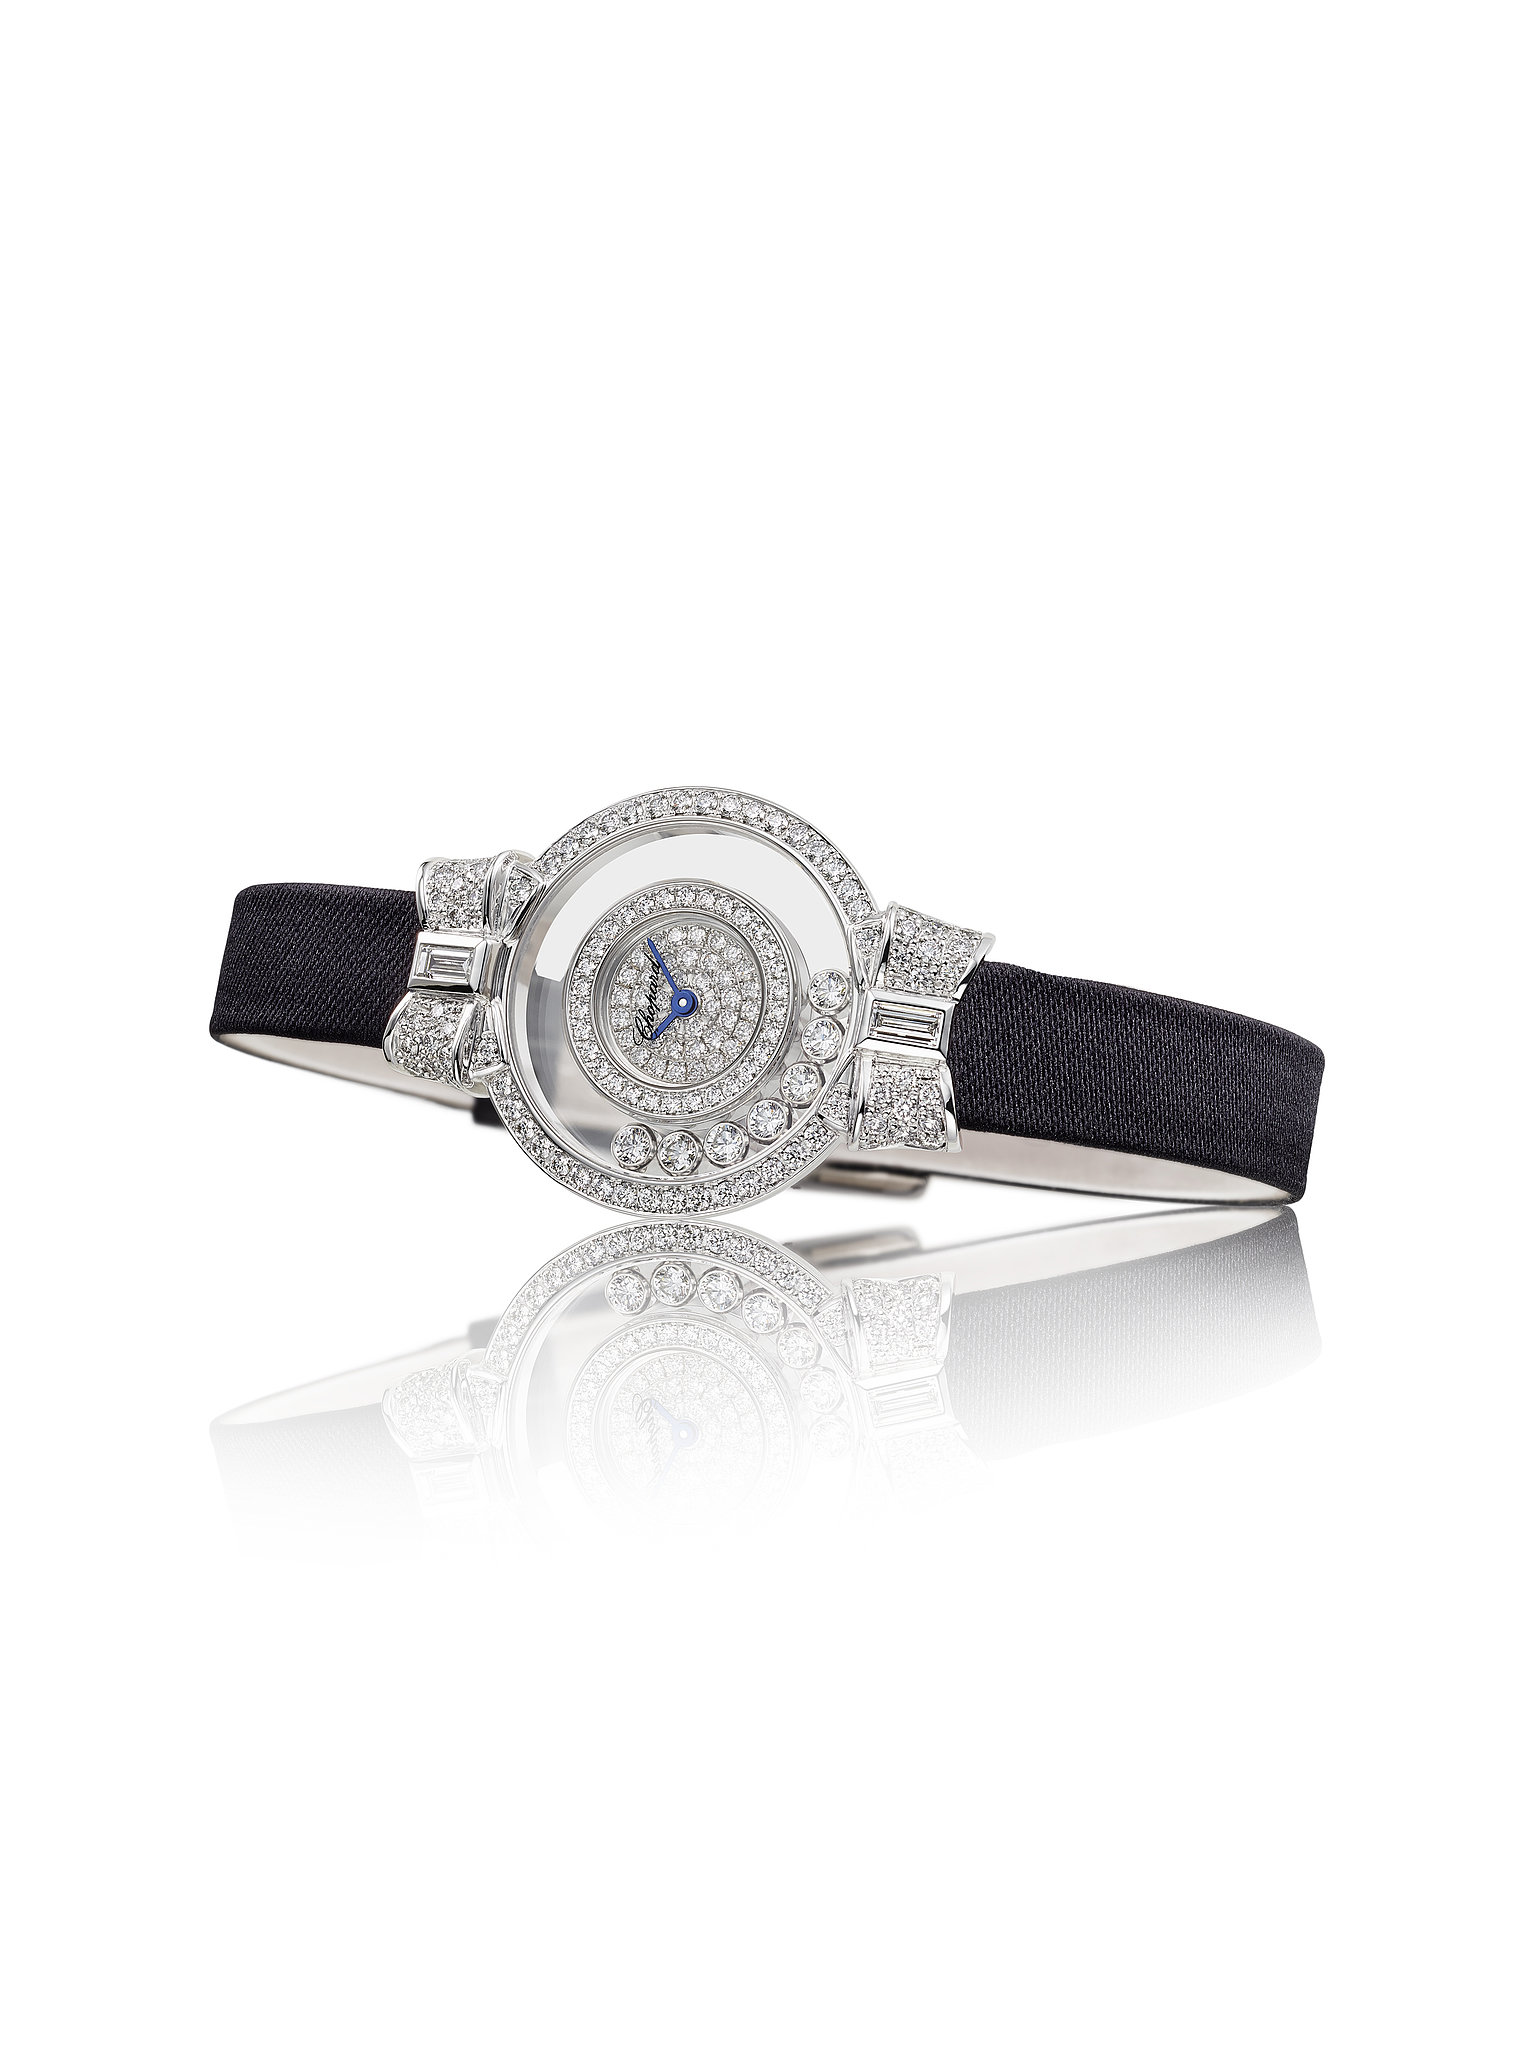 Chopard Happy Diamonds collection diamond timepiece, featuring a baguette and brilliant-cut white diamond face set in 18-karat white gold on a black satin strap. Source: Chopard